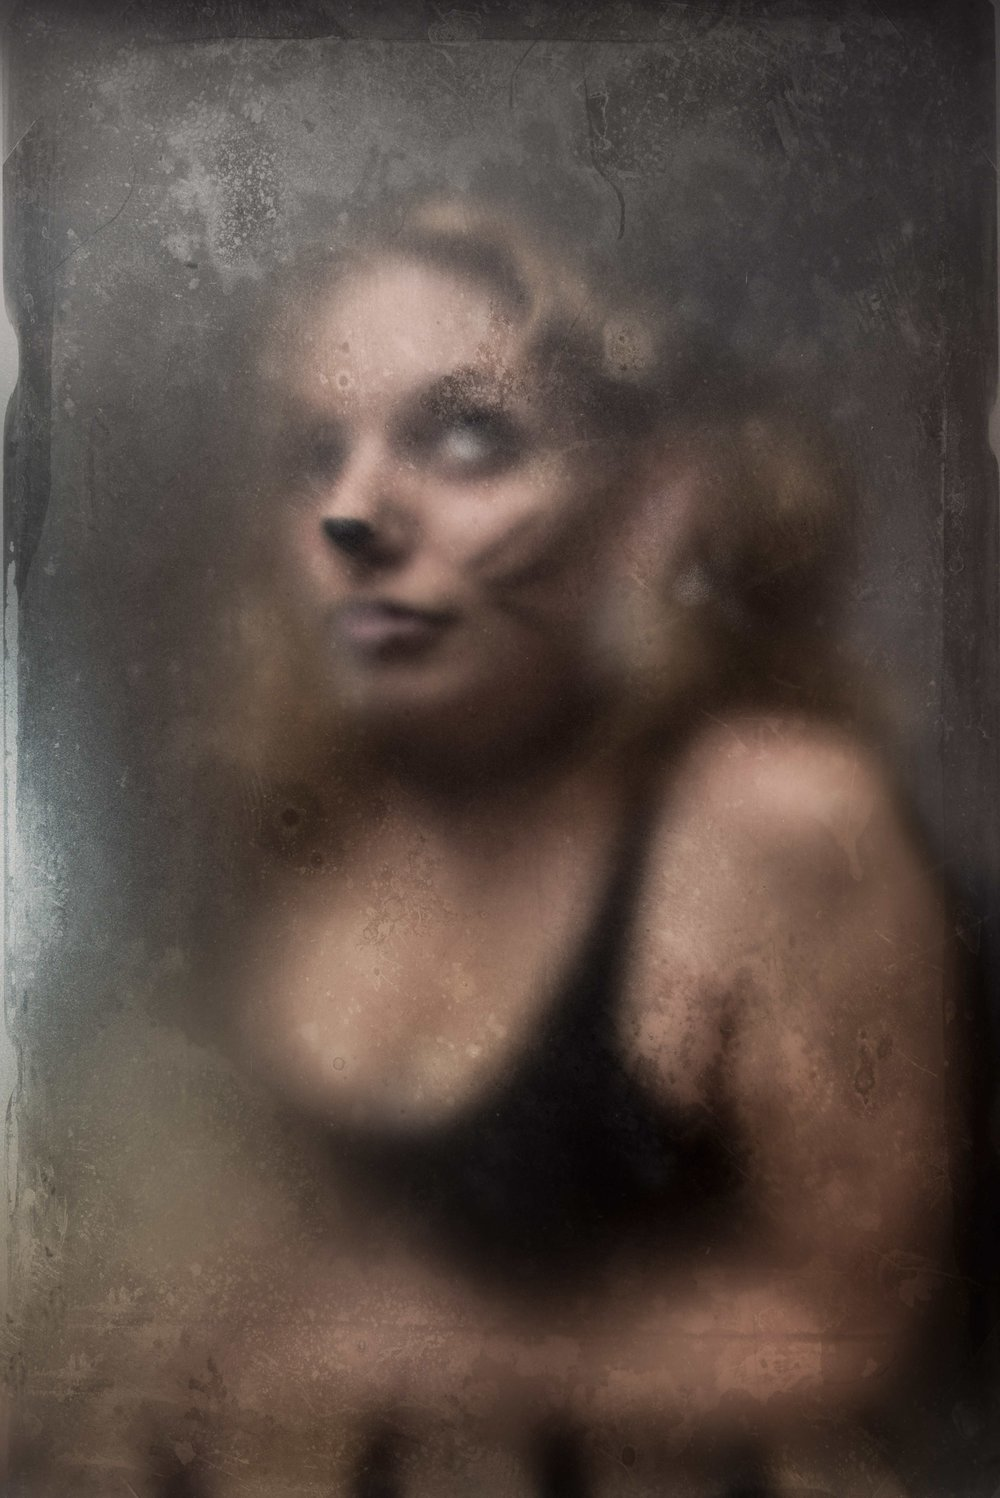 austin-trigg-halloween-spooky-portraits-cat-woman-lighting-project-personal-scary-makeup-costume-old-fashion-style-fog-glass.jpg